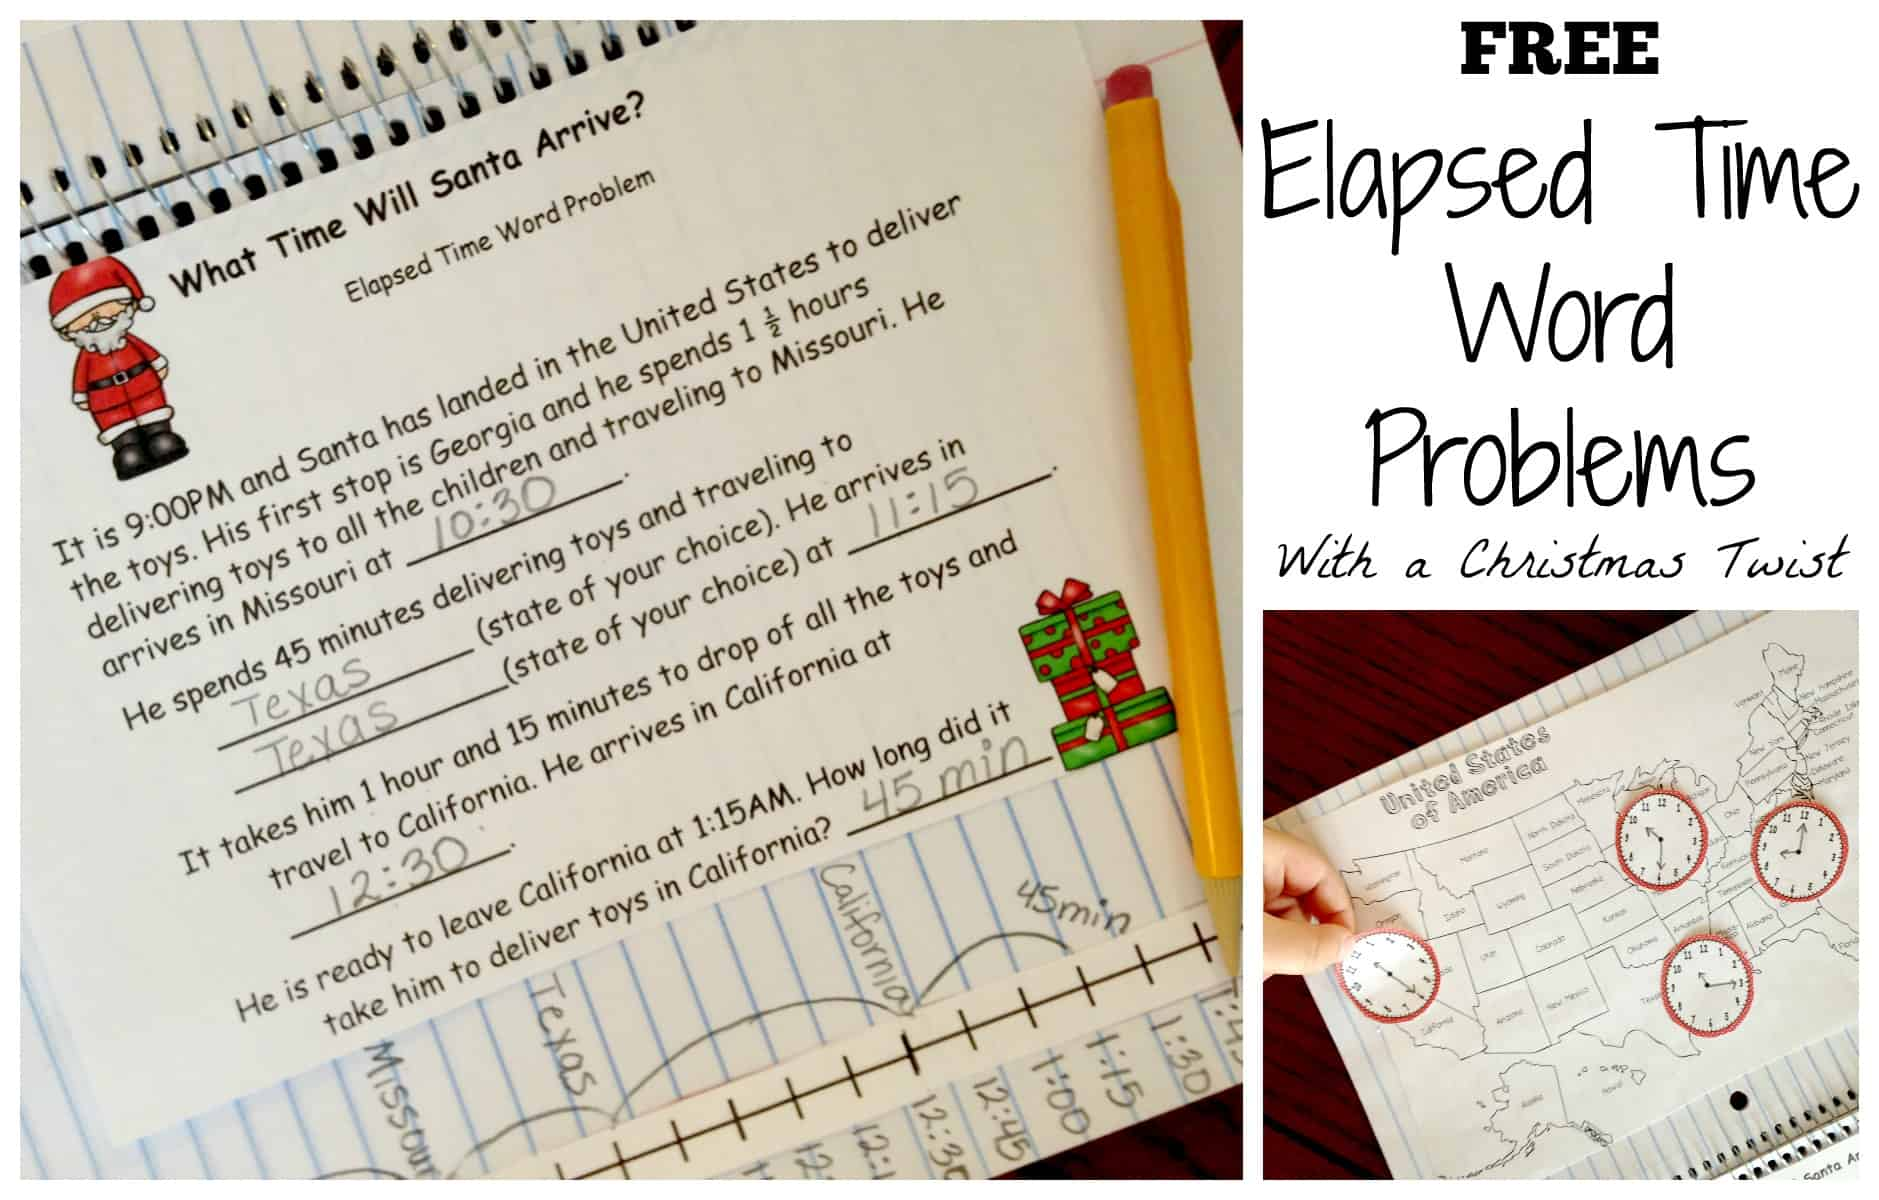 Here S A Free Elapsed Time Word Problem With A Christmas Twist